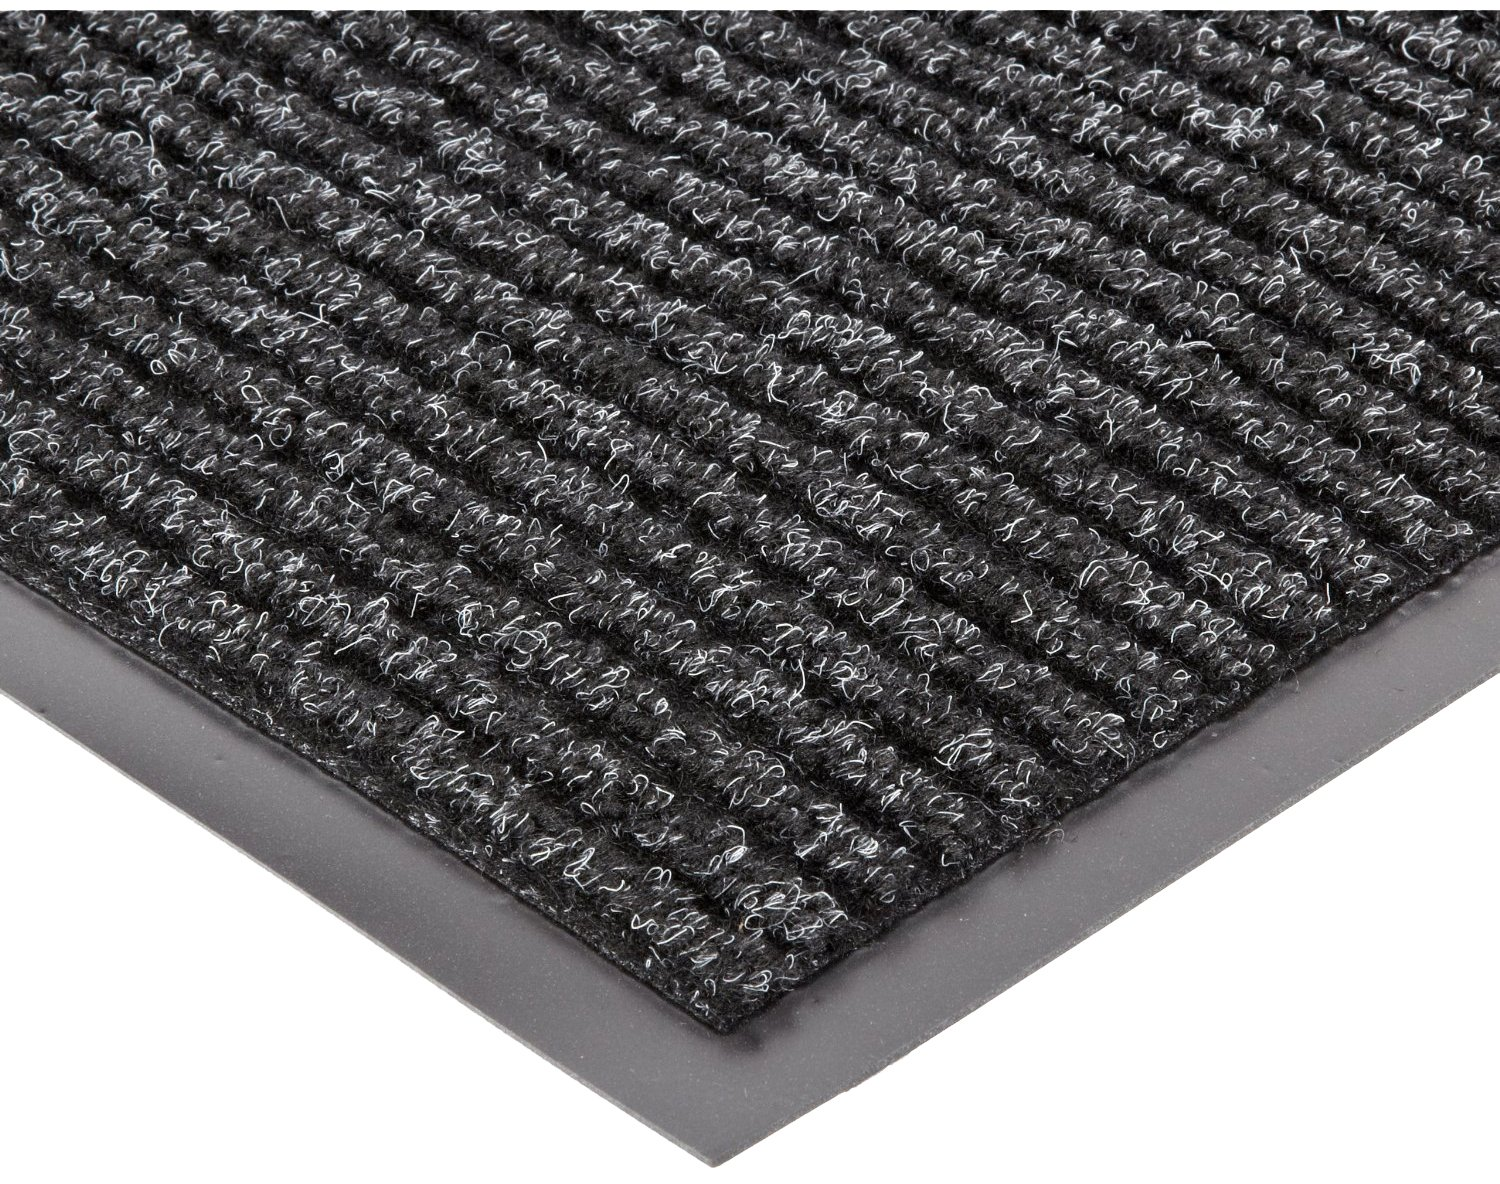 NoTrax 117 Heritage Rib Entrance Mat, for Lobbies and Indoor Entranceways, 4' Width x 8' Length x 3/8'' Thickness, Charcoal